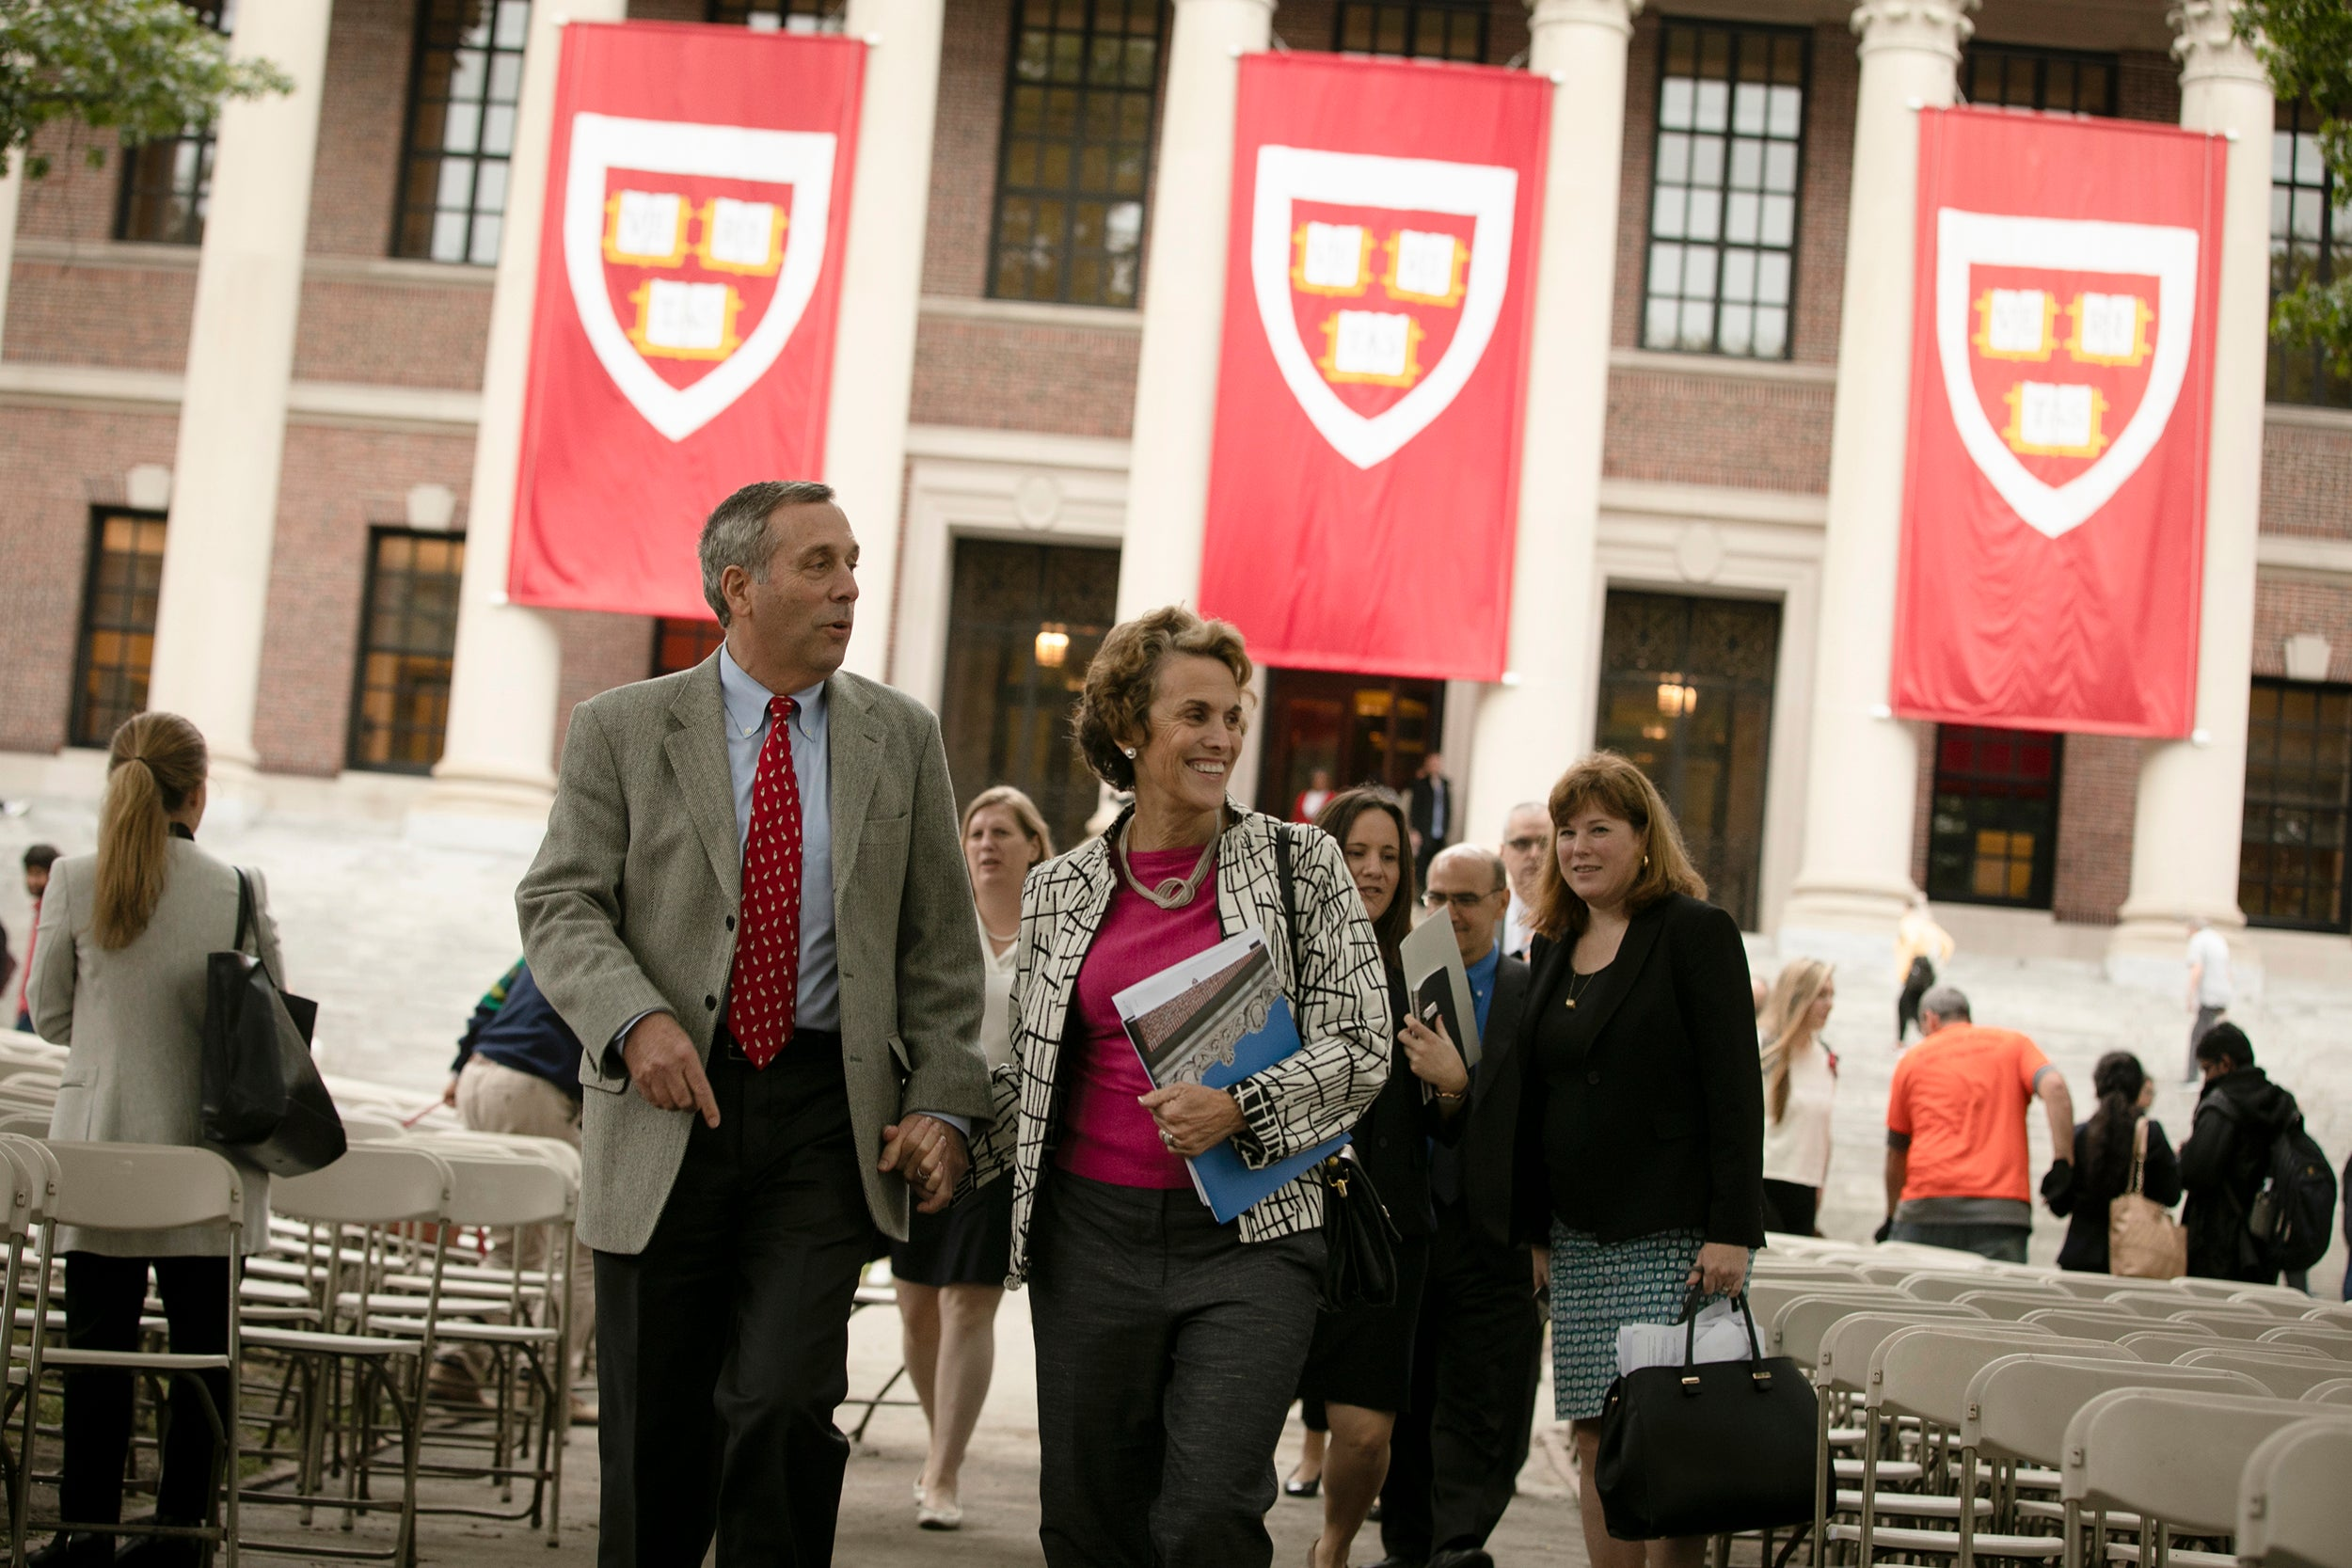 Harvard President Larry Bacow (left) and Adele Bacow walk through the schedule for his Inauguration two days before the event takes place.